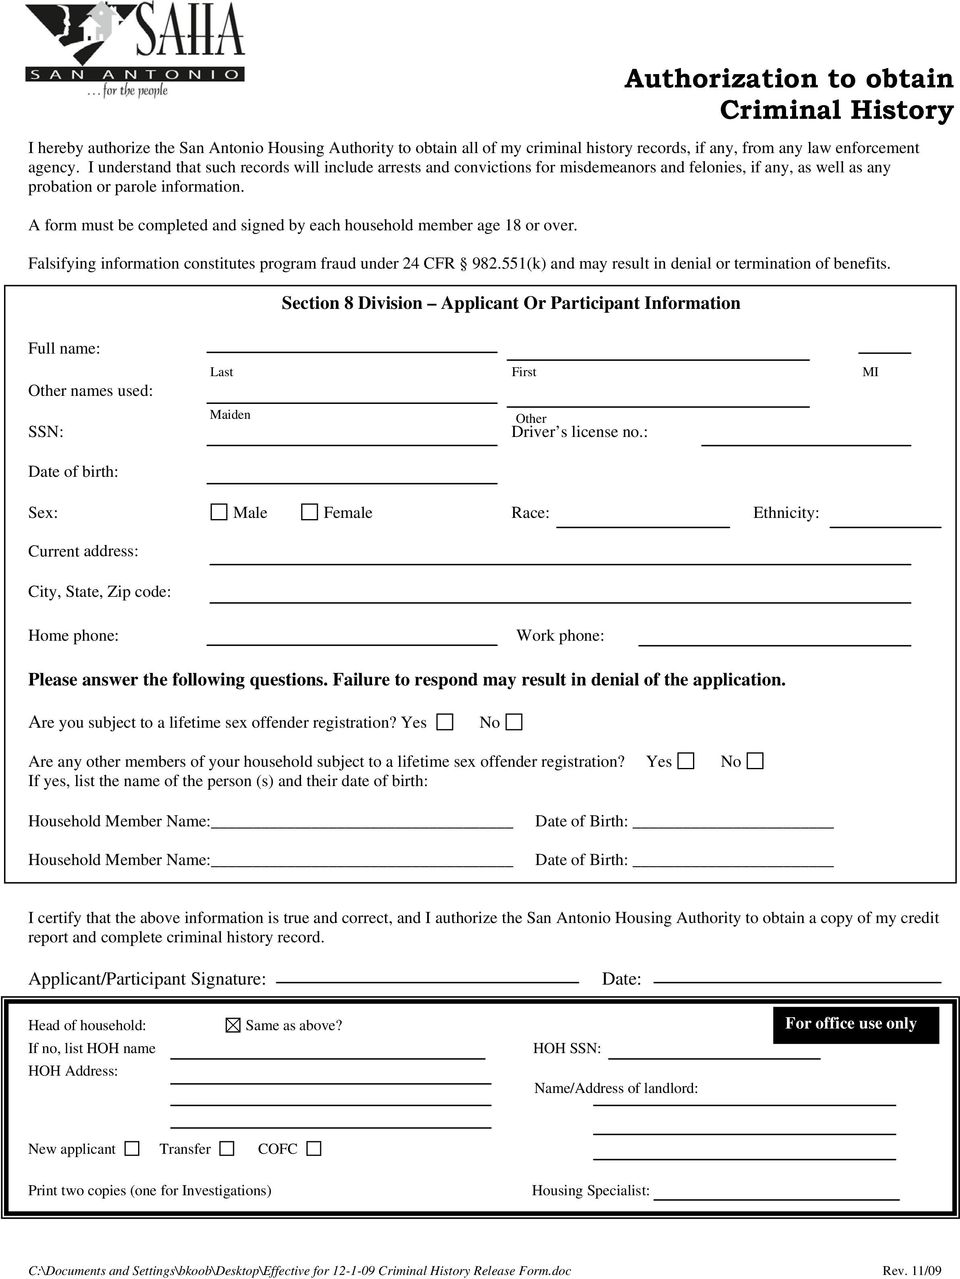 A form must be completed and signed by each household member age 18 or over. Falsifying information constitutes program fraud under 24 CFR 982.